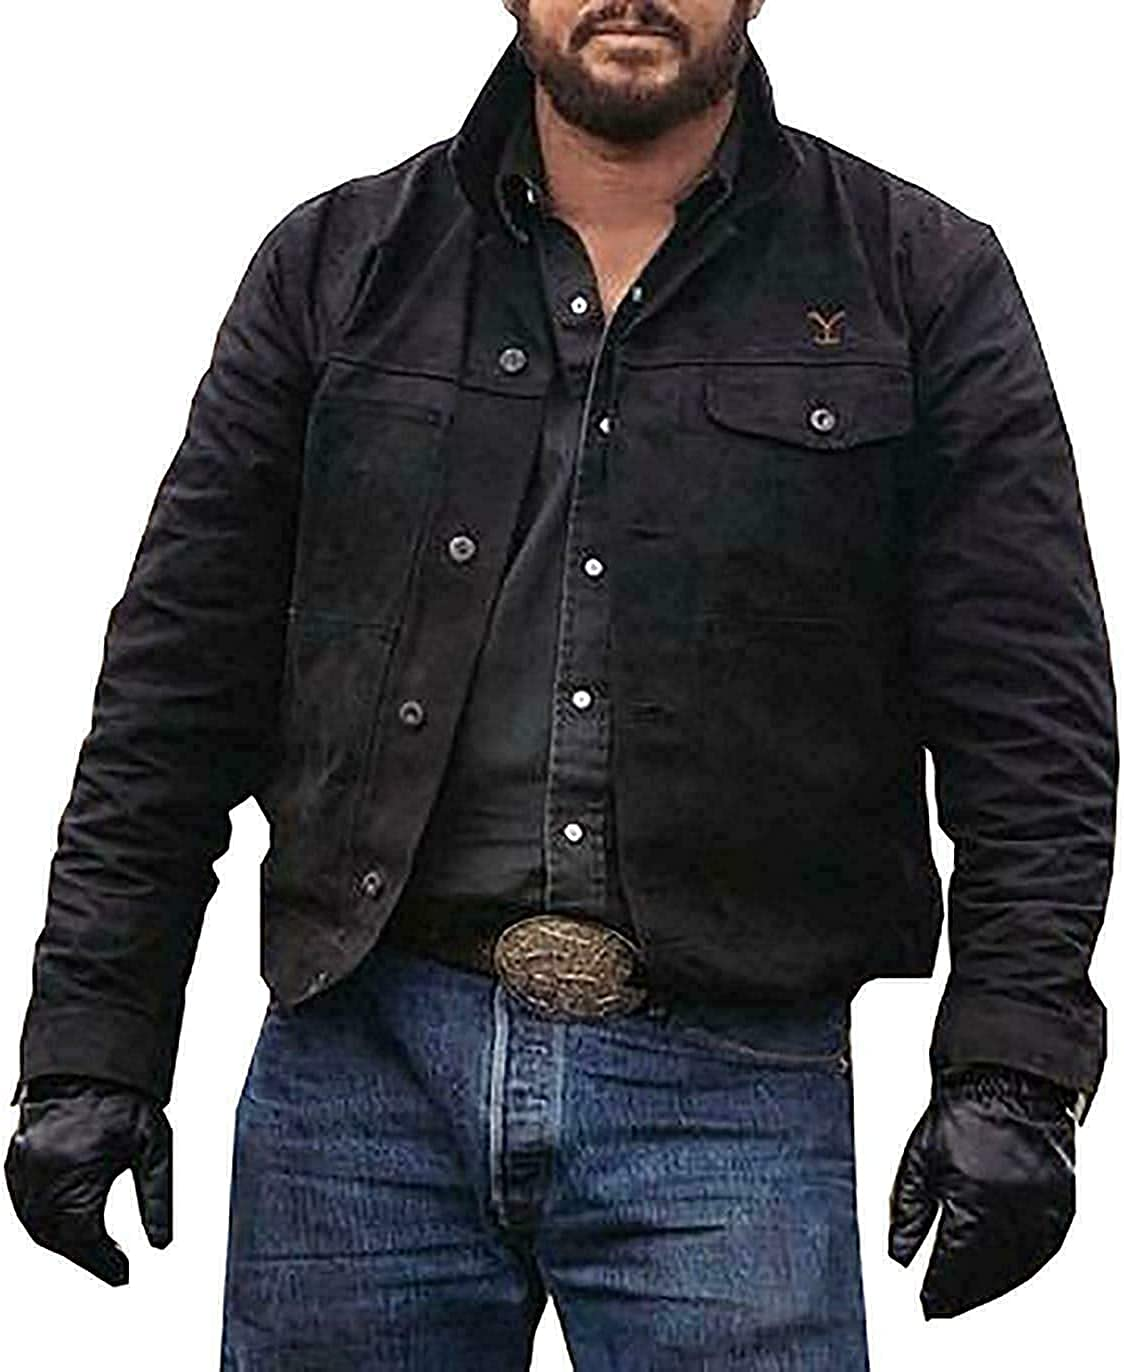 Excellence Men's Cowboy Cole Hauser Stylish Suede Jacket Leather High quality new Black With